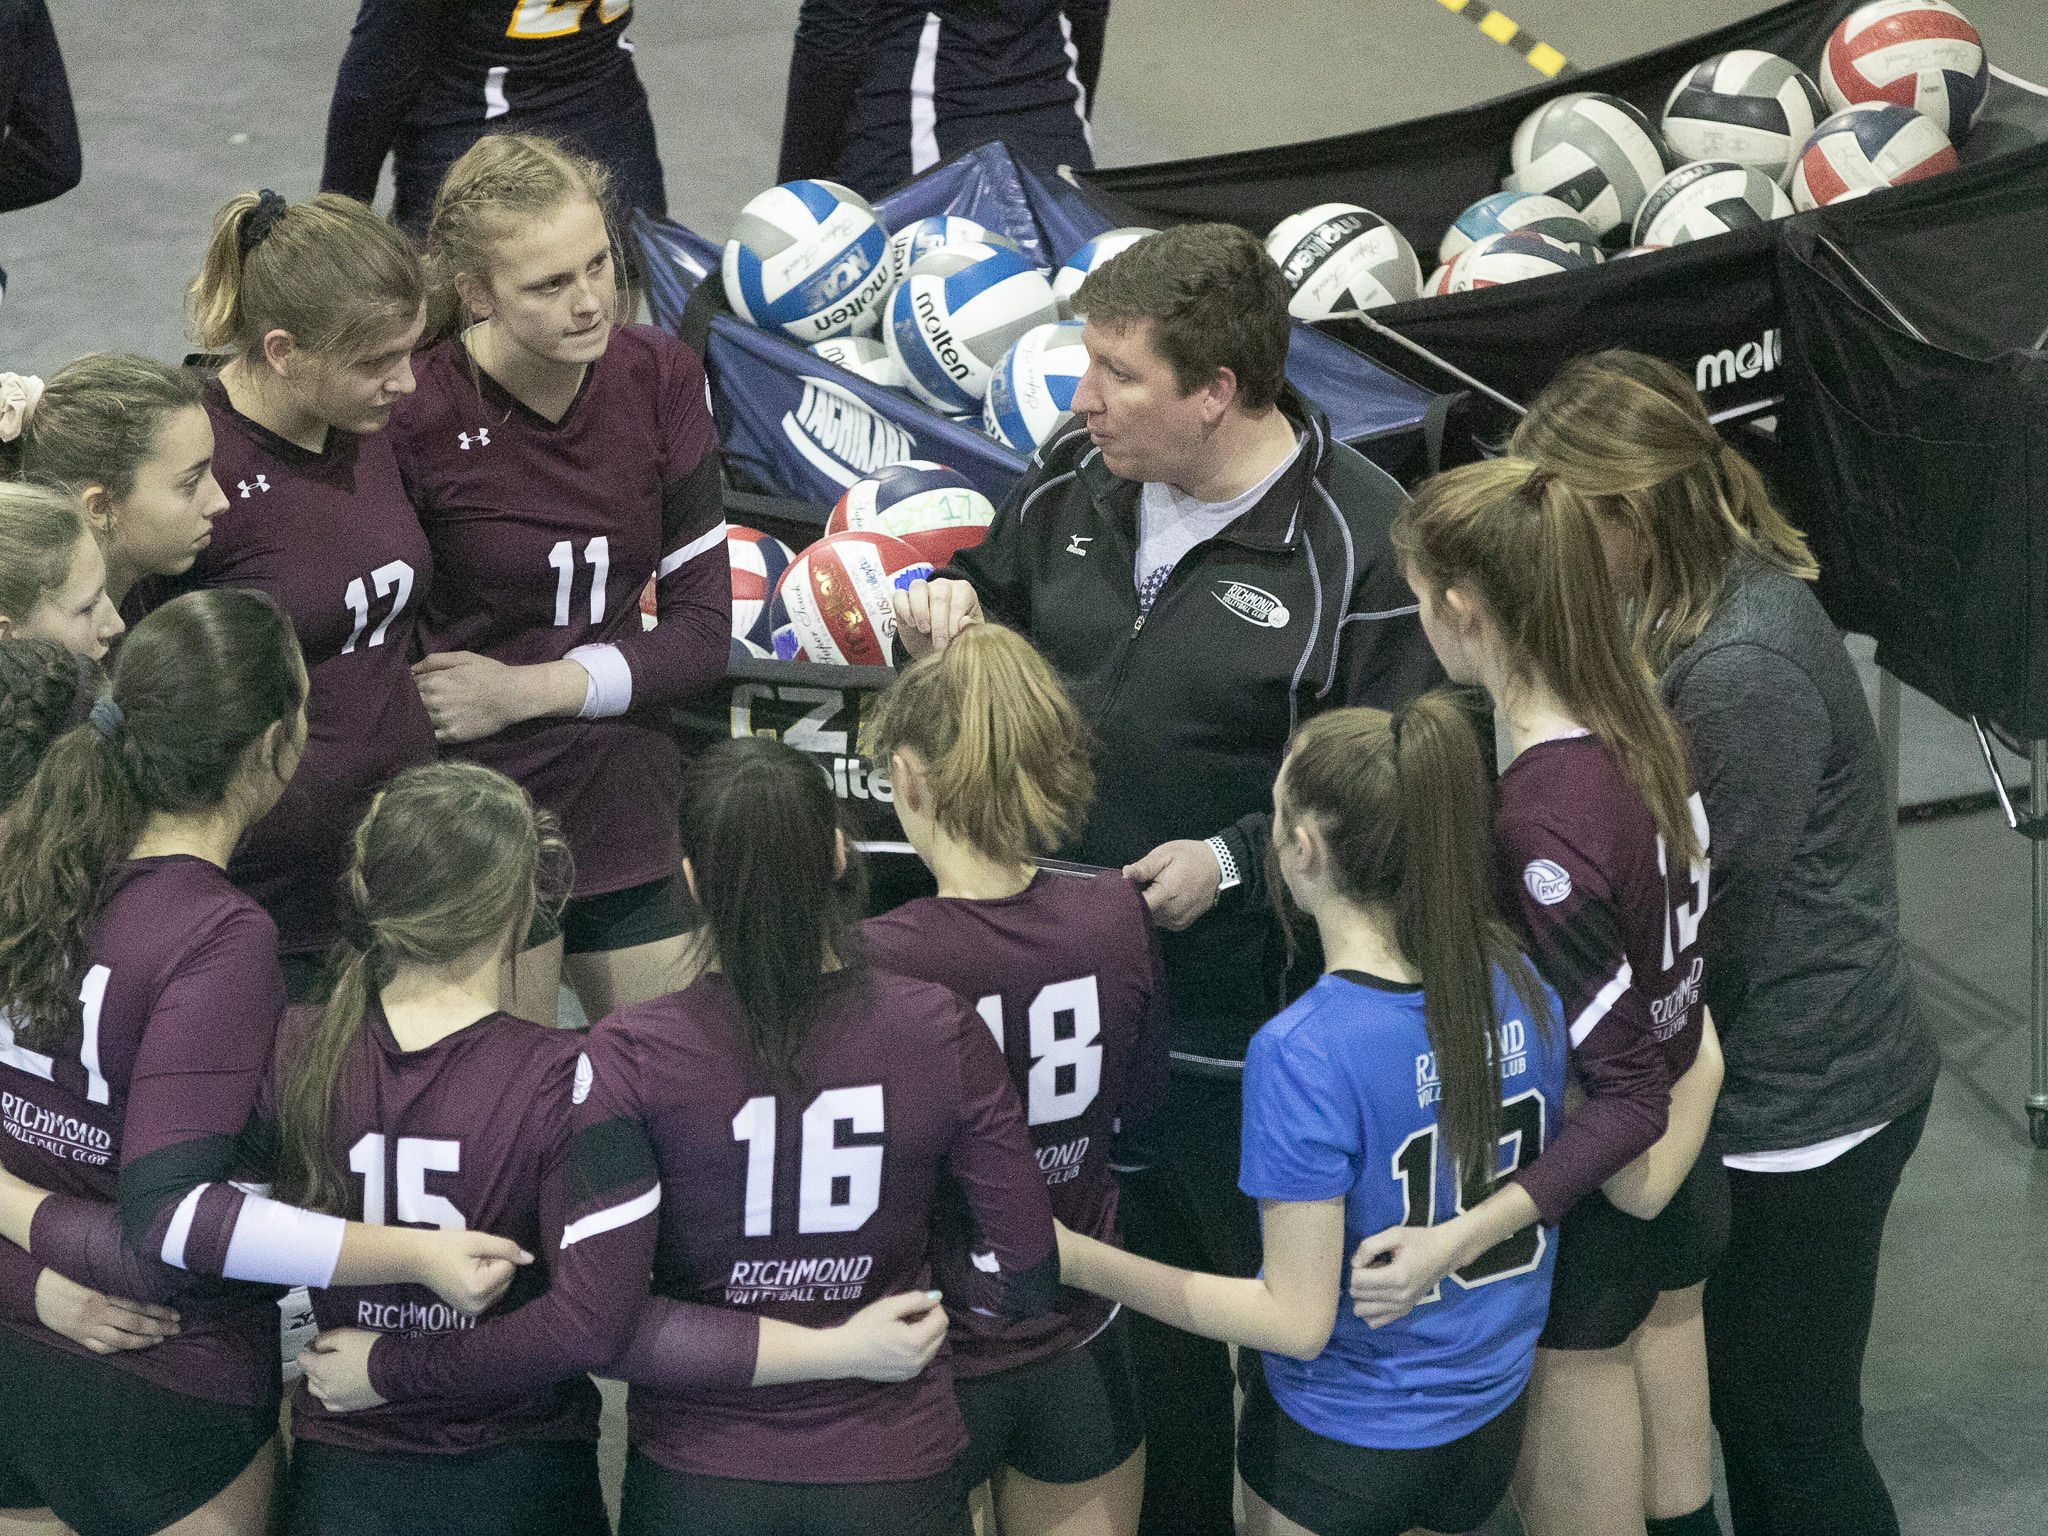 Richmond Volleyball Club Hosts Monument City Classic Juniors Volleyball Tournament